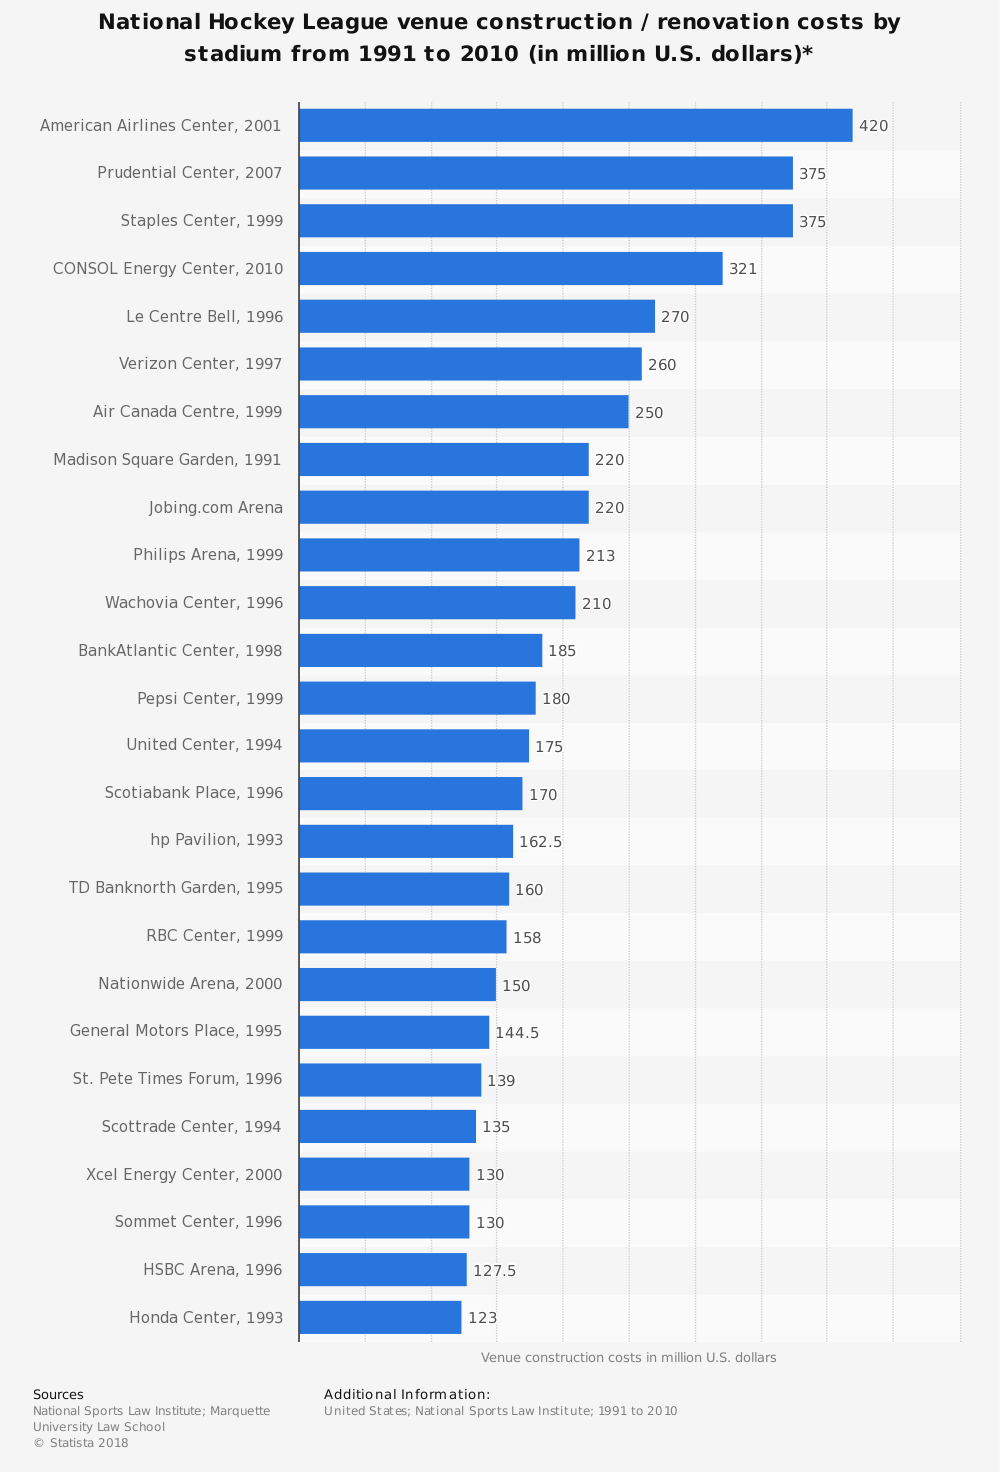 Statistic: National Hockey League venue construction / renovation costs by stadium from 1991 to 2010 (in million U.S. dollars)* | Statista